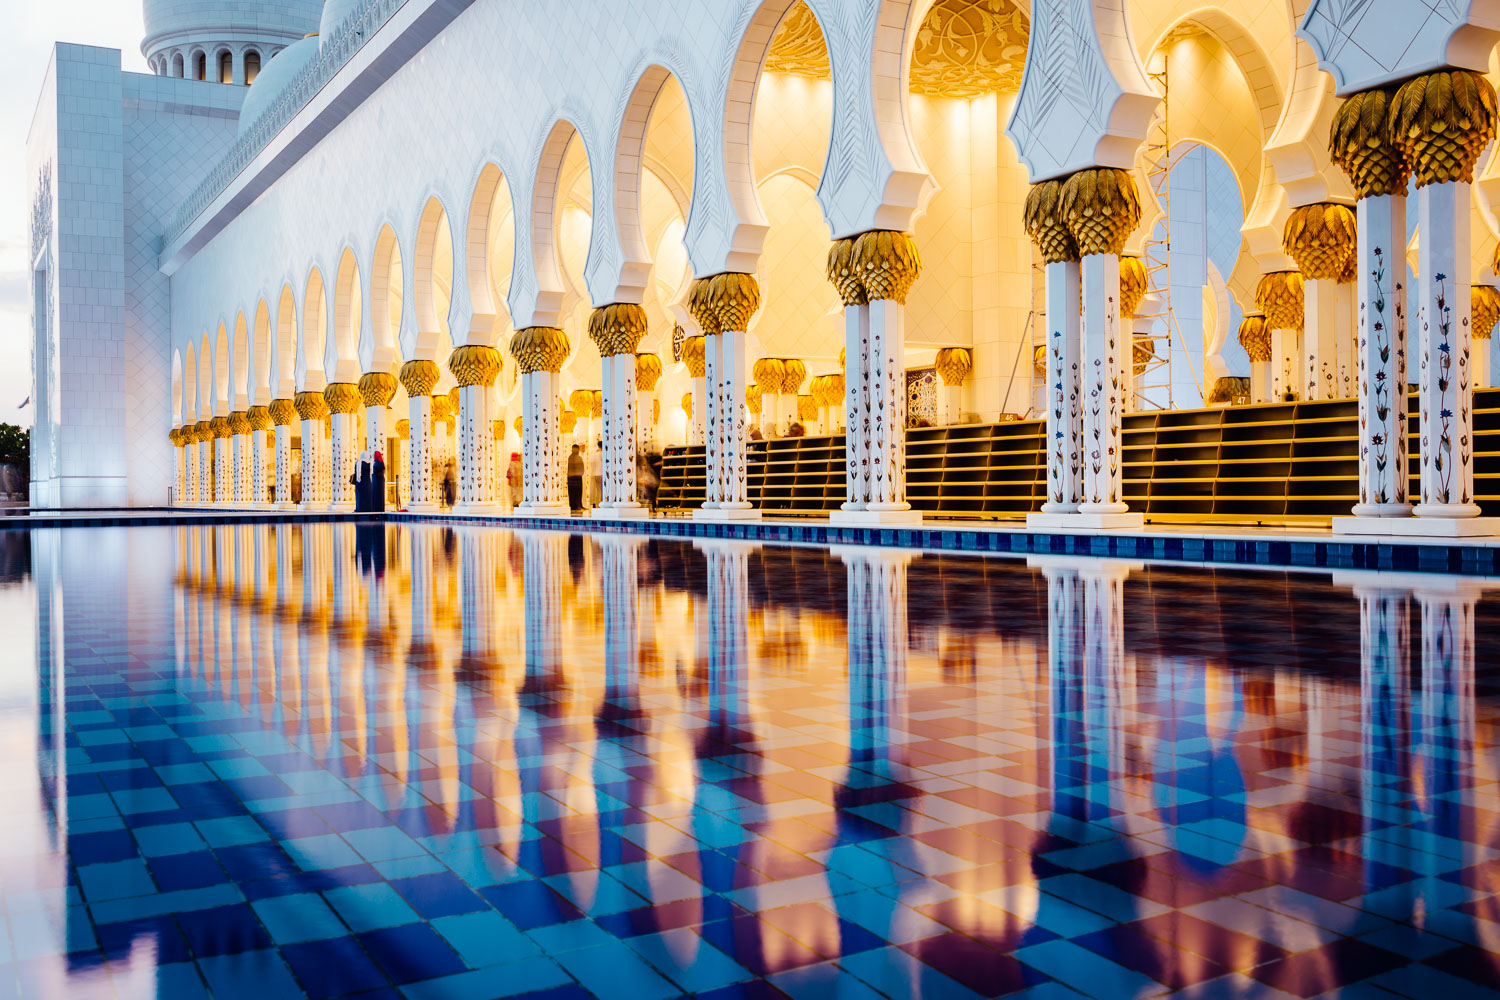 Mosque-Light-Orange-Blue-Fountain-Durazo-Photography-Project-Travel.jpg